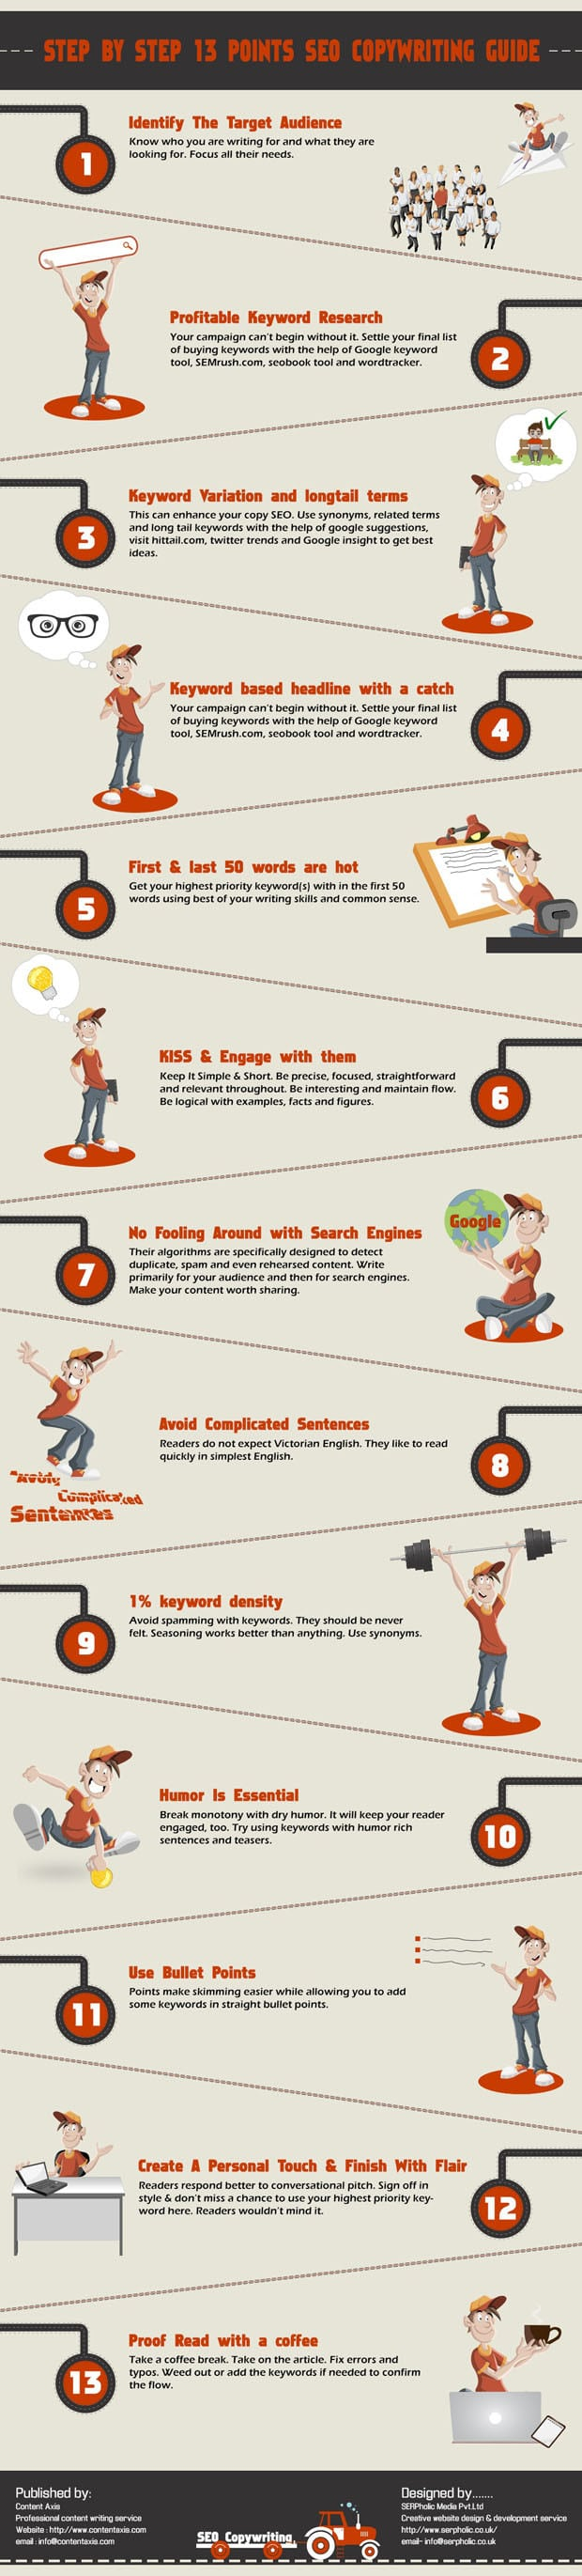 Copywriting Guide: 13 Steps To Master It [Infographic]